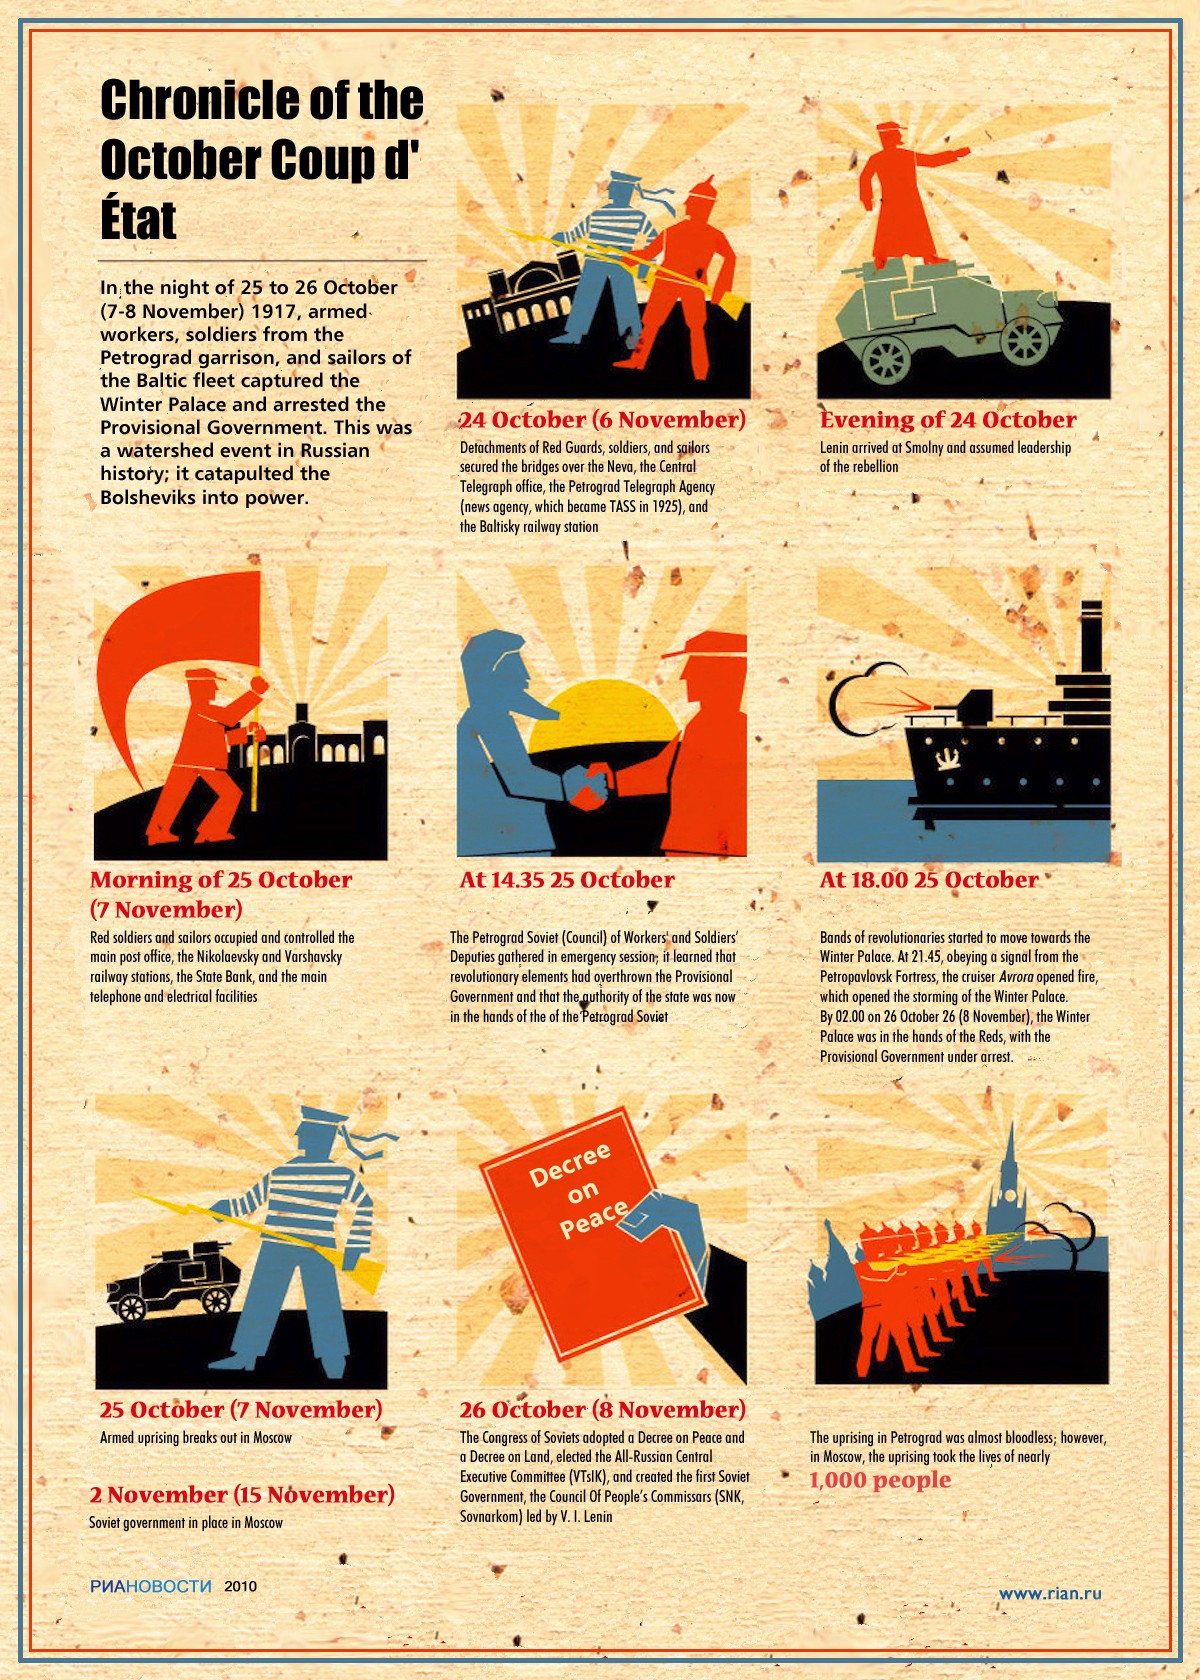 00 RIA-Novosti Infographics. Chronicle of the October Coup d' État. 2011